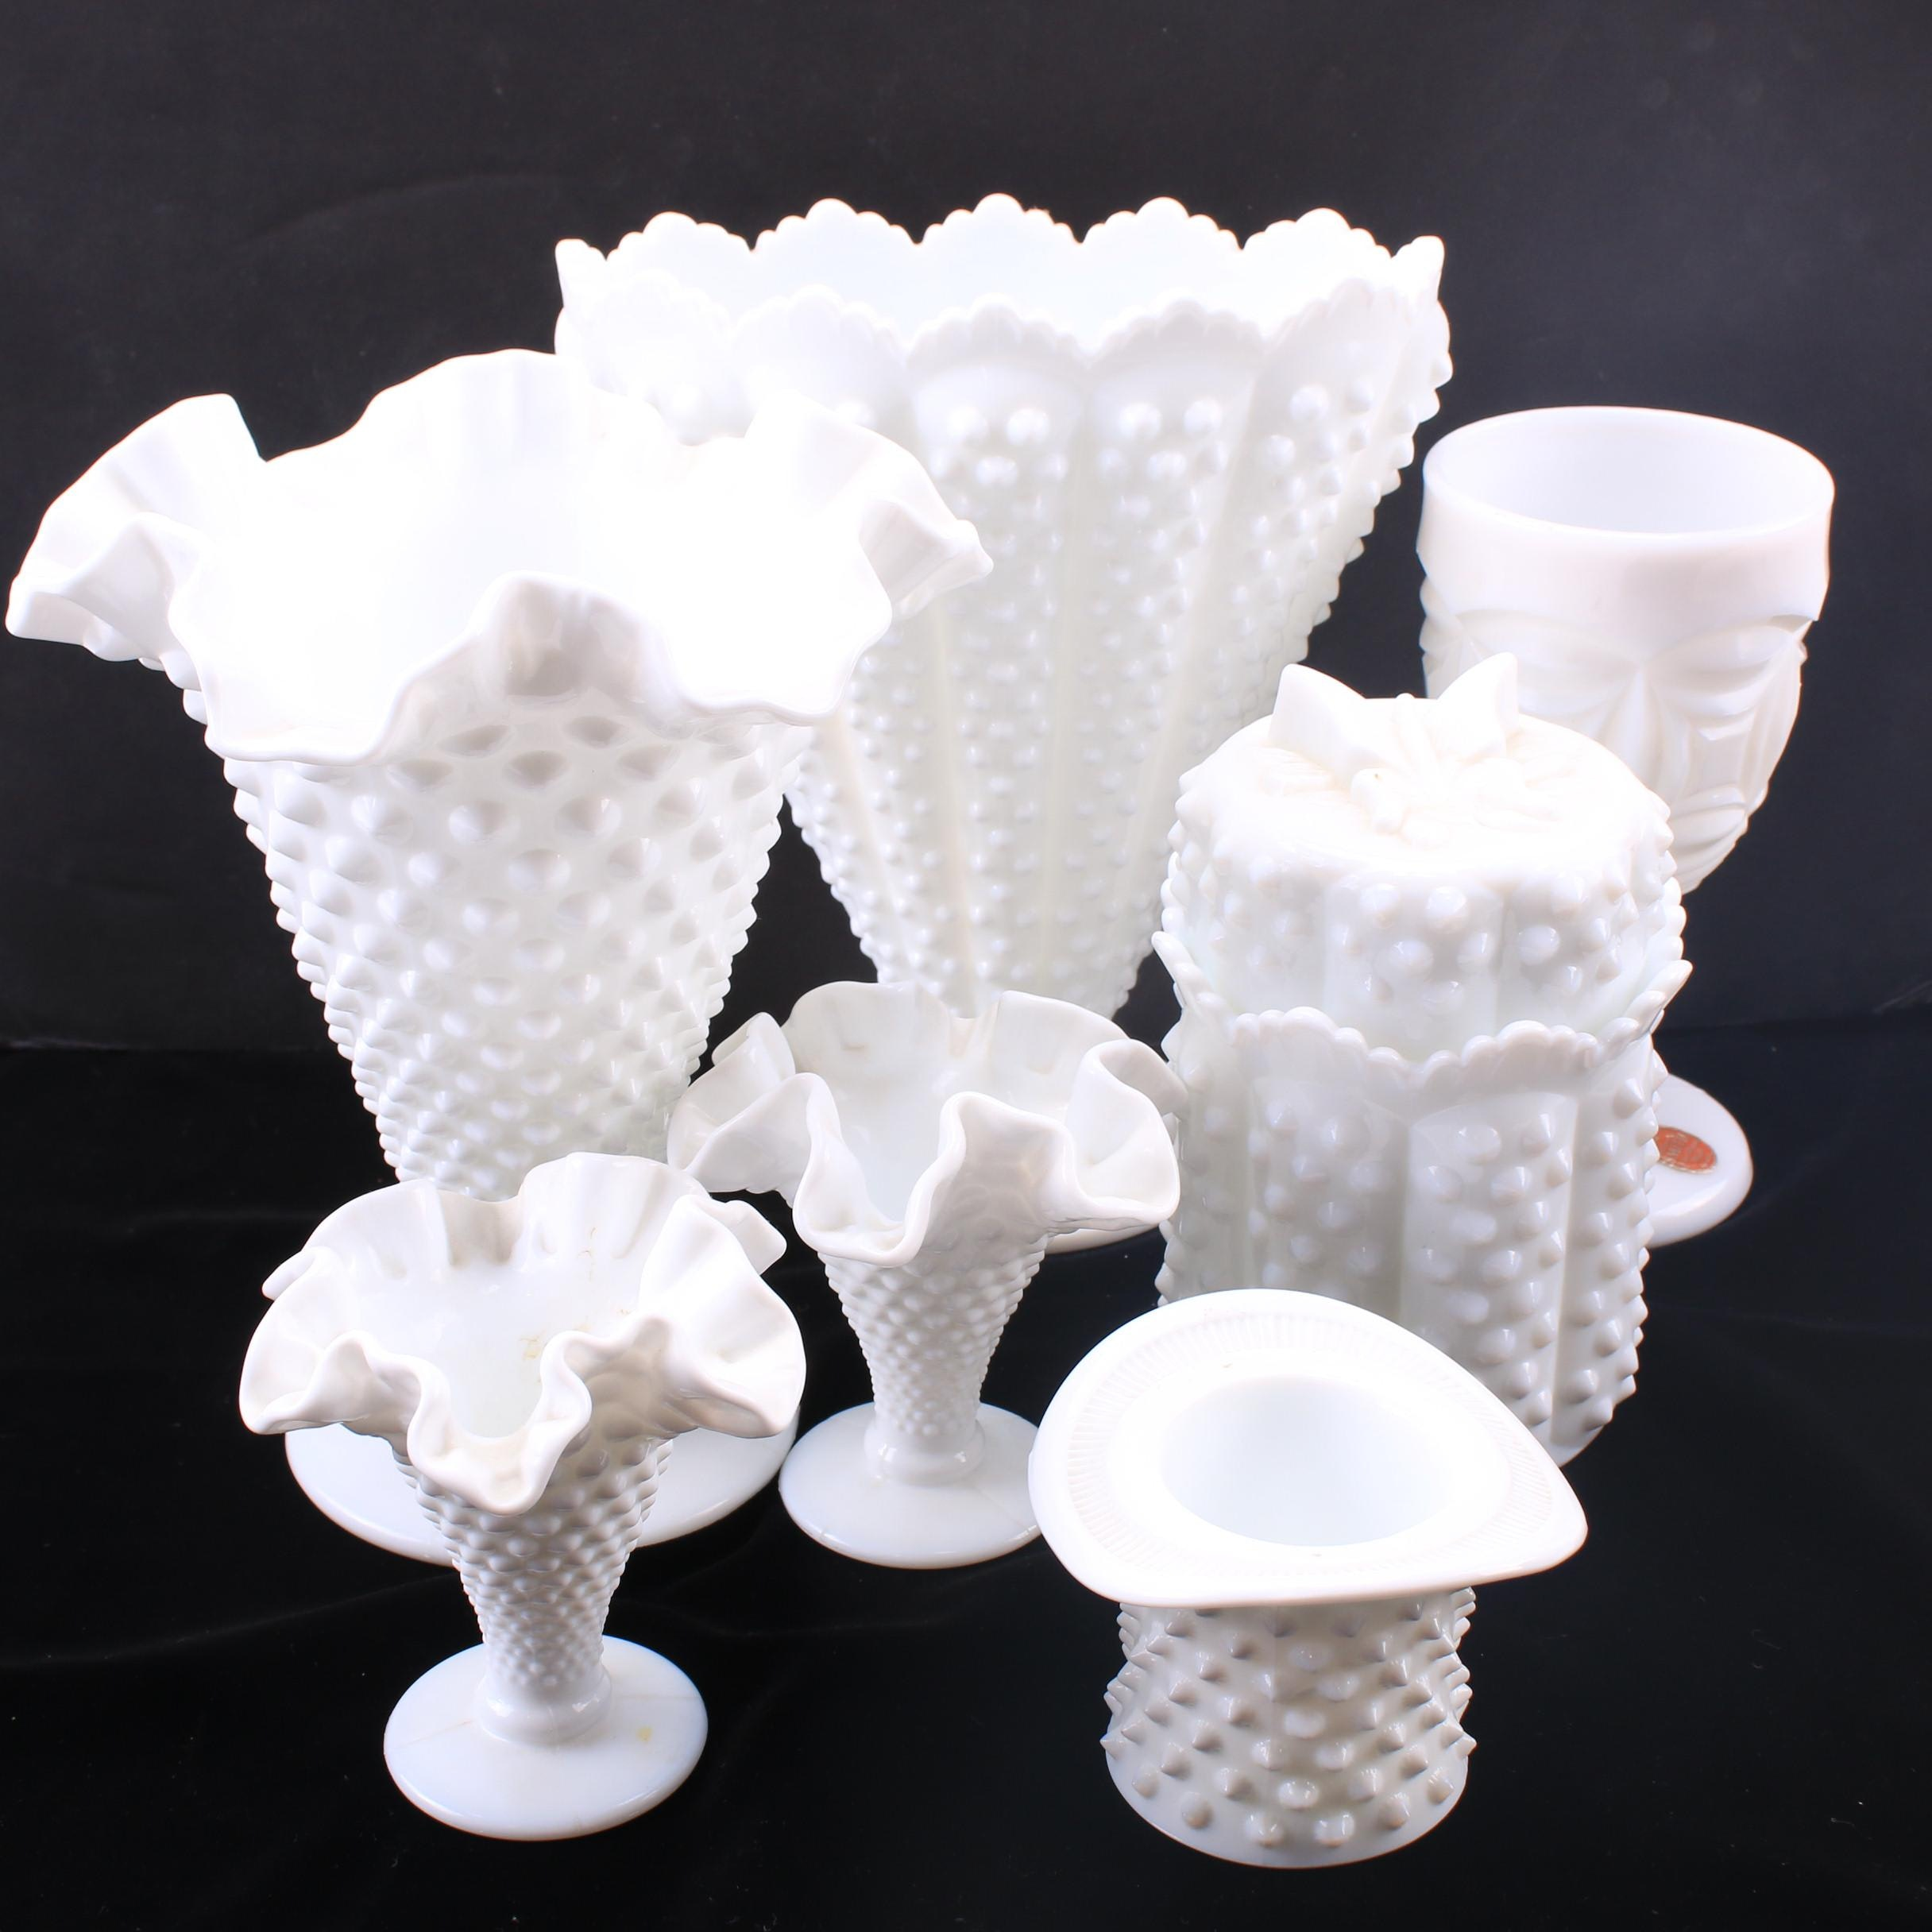 Fenton Hobnail Milk Glass Vases and Decor, Vintage